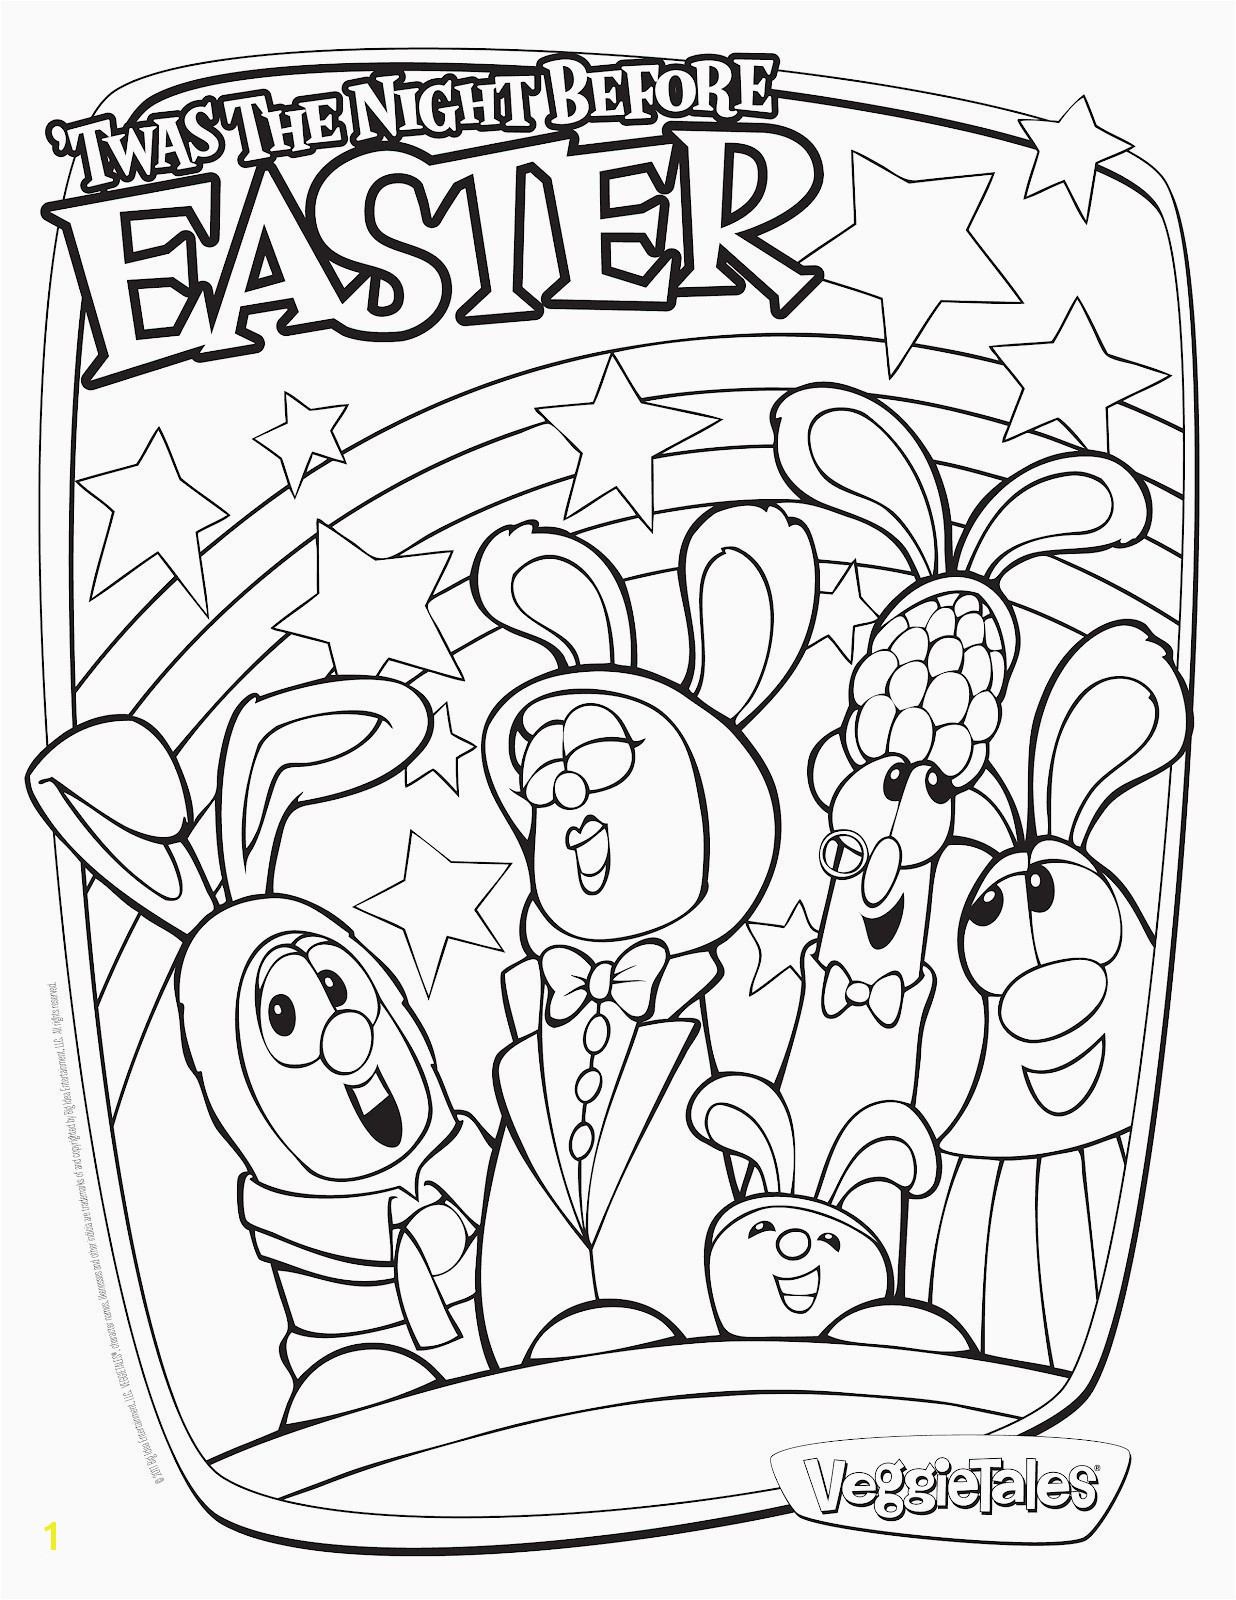 Best Coloring Page Adult Od Kids Simple Stock Vector Best Coloring Page Adult Od Kids creation coloring pages best of